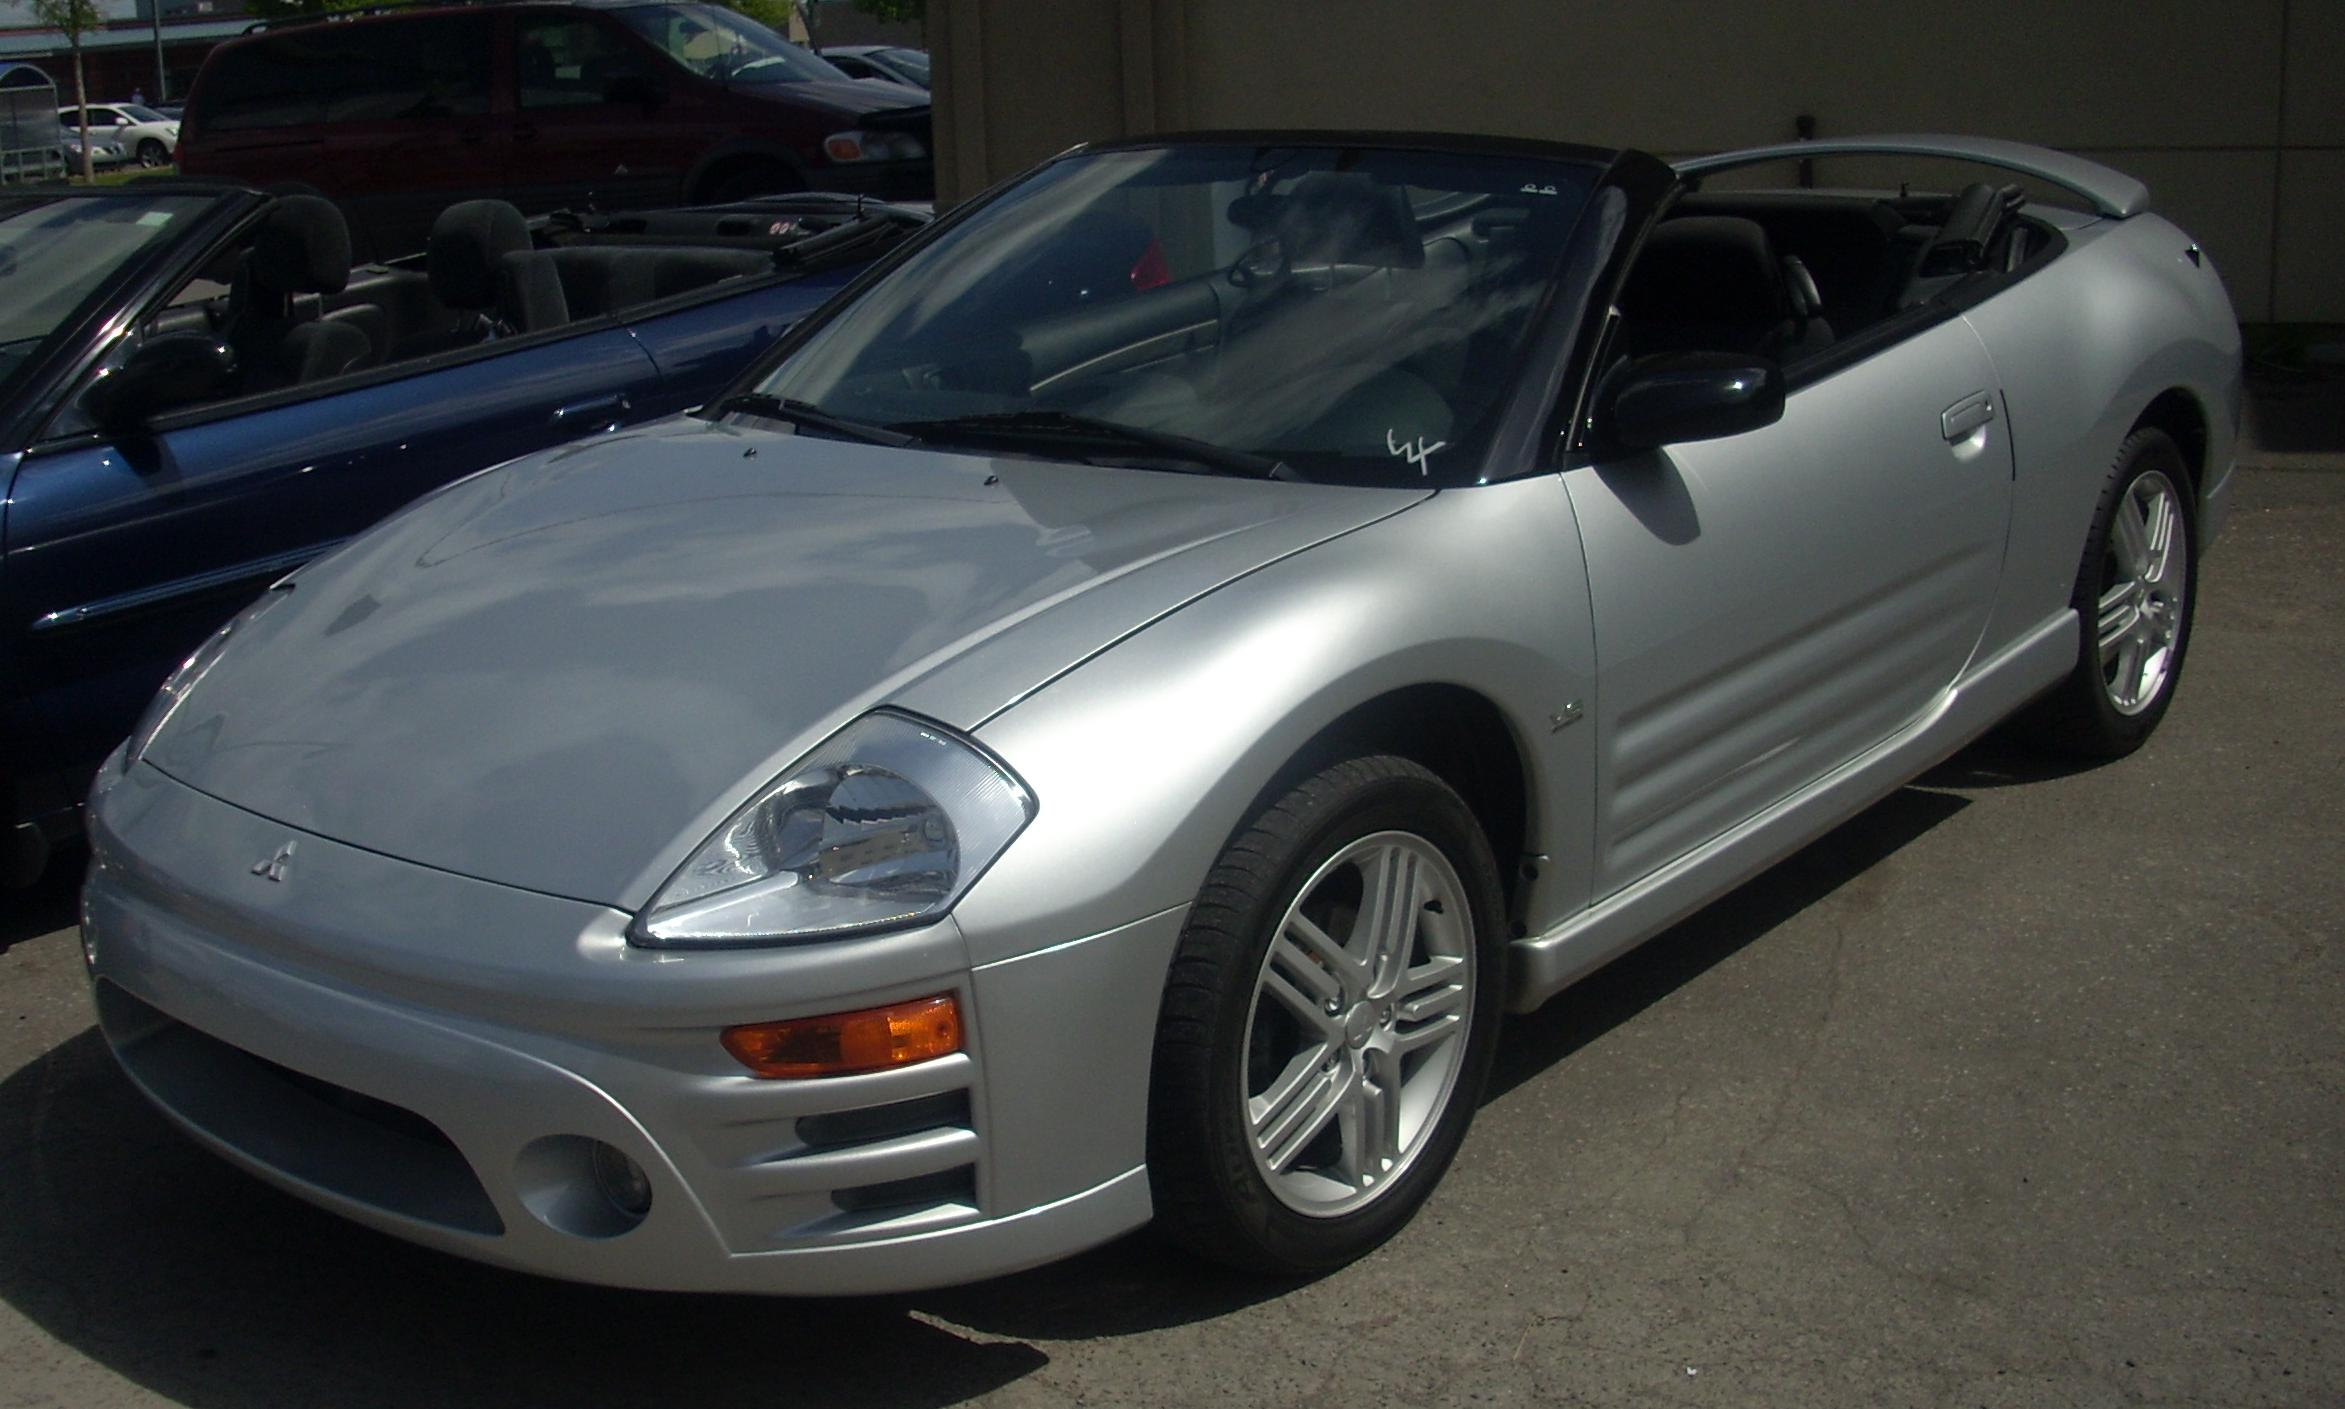 file 39 03 39 05 mitsubishi eclipse spyder v6 jpg wikimedia commons. Black Bedroom Furniture Sets. Home Design Ideas